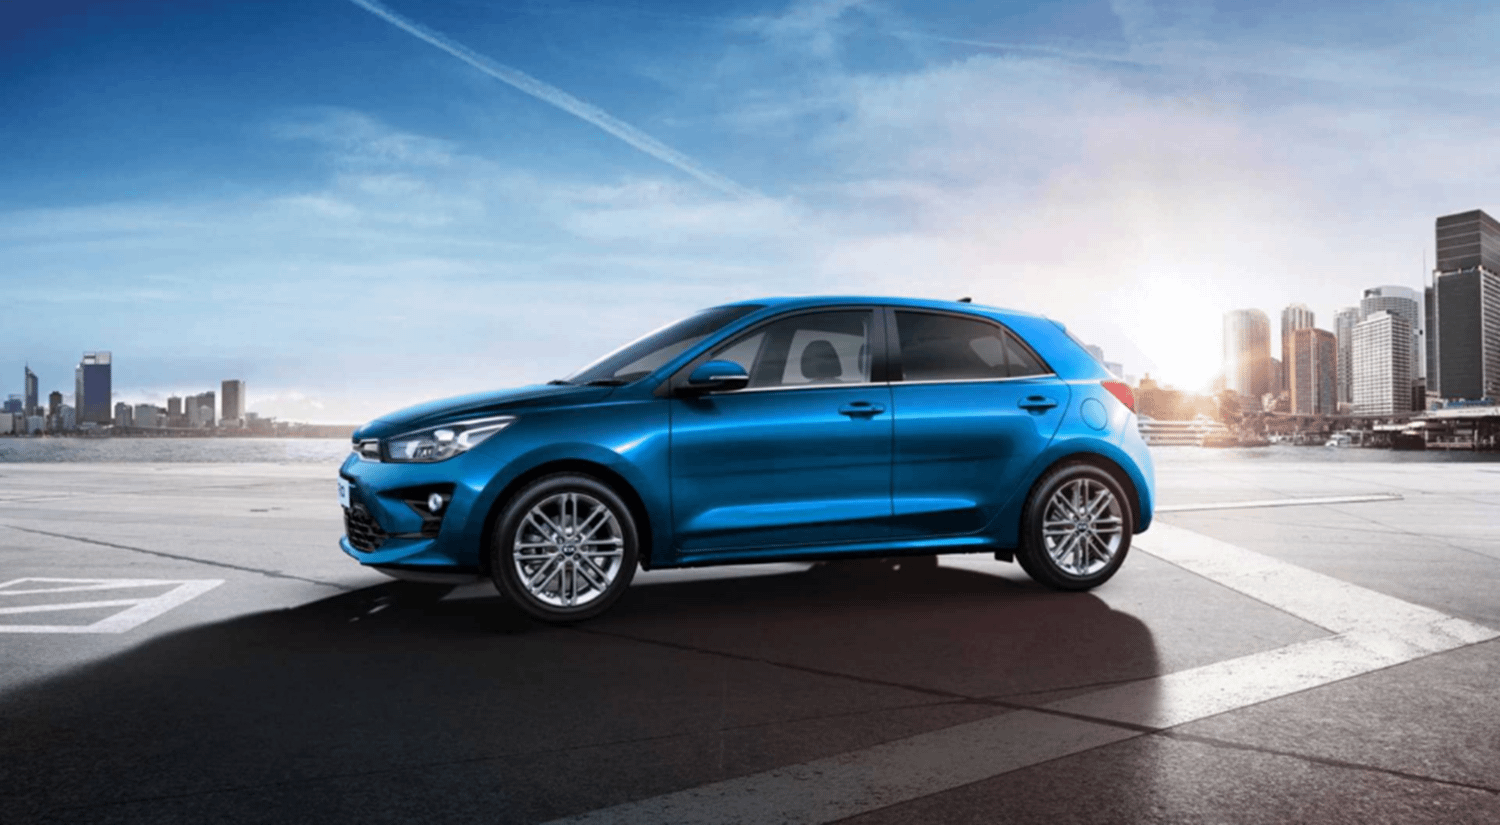 New Kia Rio 2021 in blue